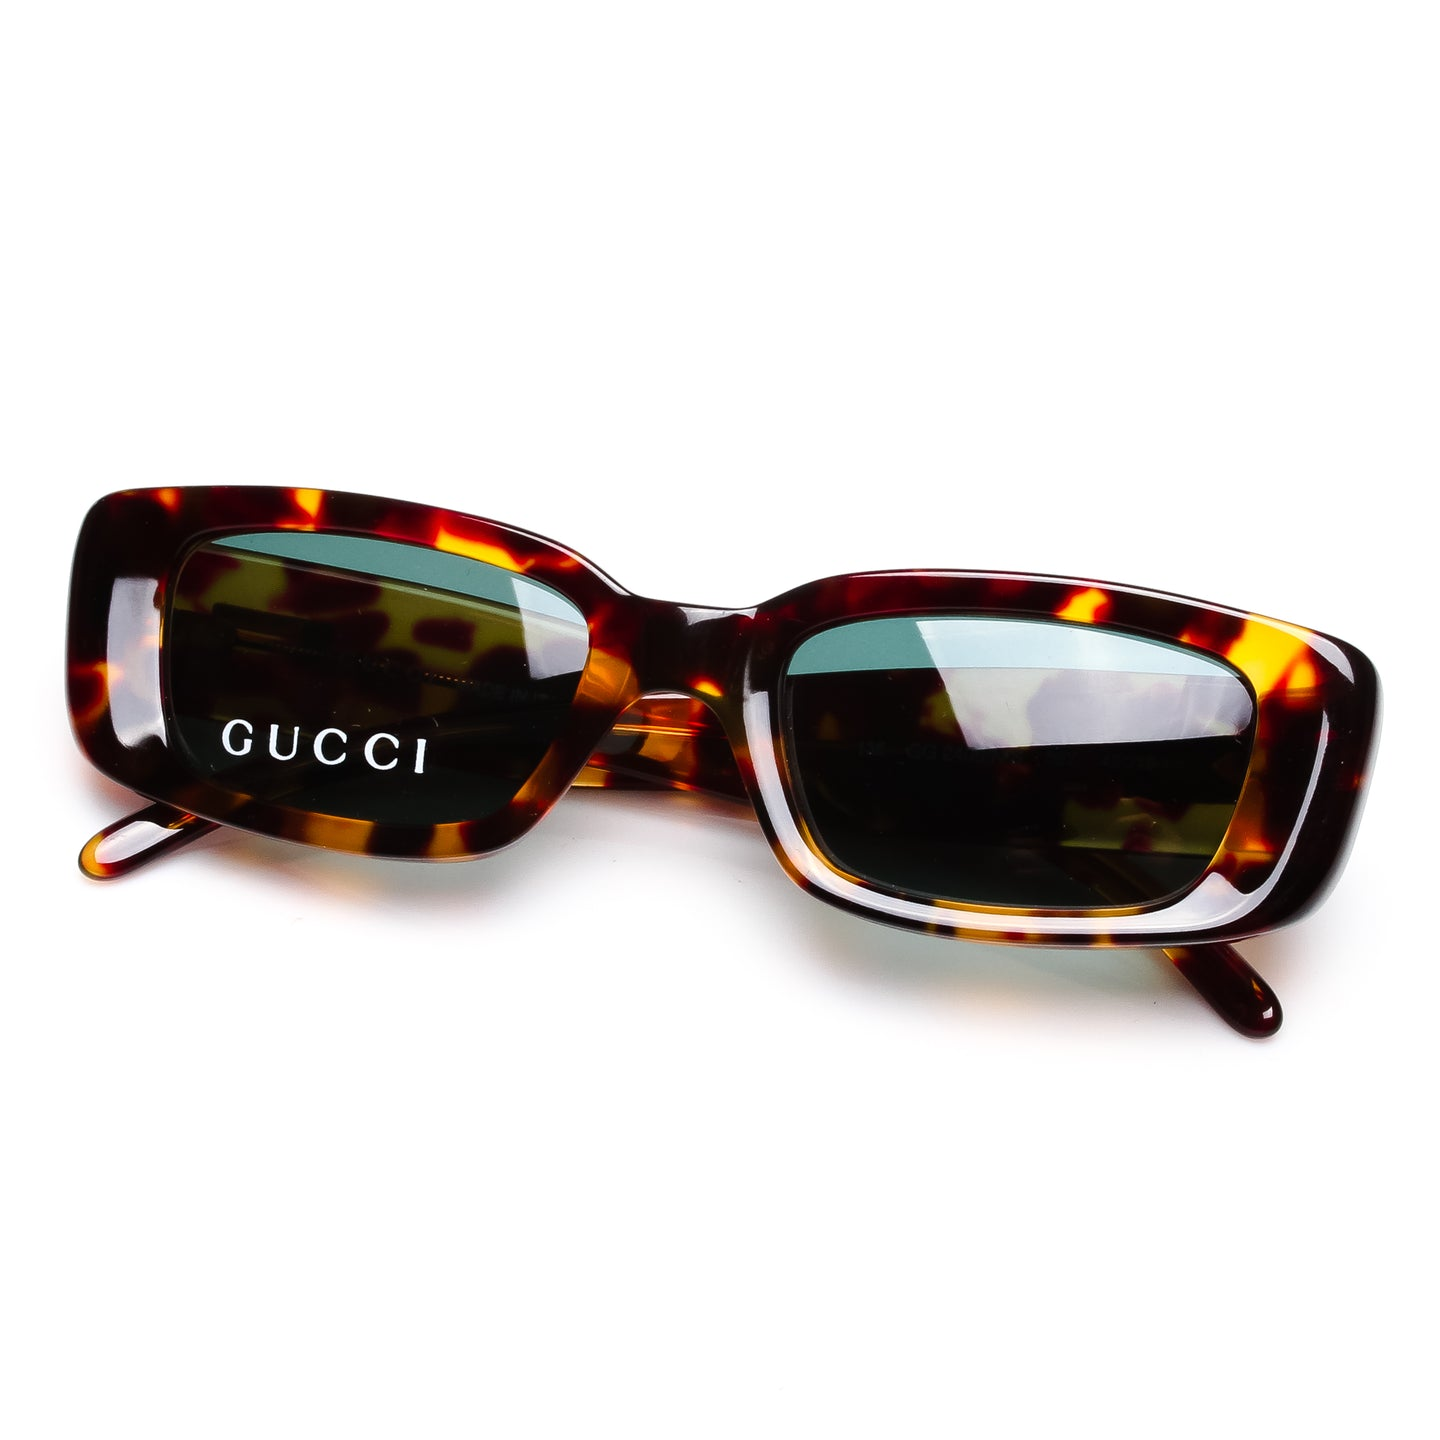 Gucci 2409/N/S 02Y, Gucci , glasses frames, eyeglasses online, eyeglass frames, mens glasses, womens glasses, buy glasses online, designer eyeglasses, vintage sunglasses, retro sunglasses, vintage glasses, sunglass, eyeglass, glasses, lens, vintage frames company, vf